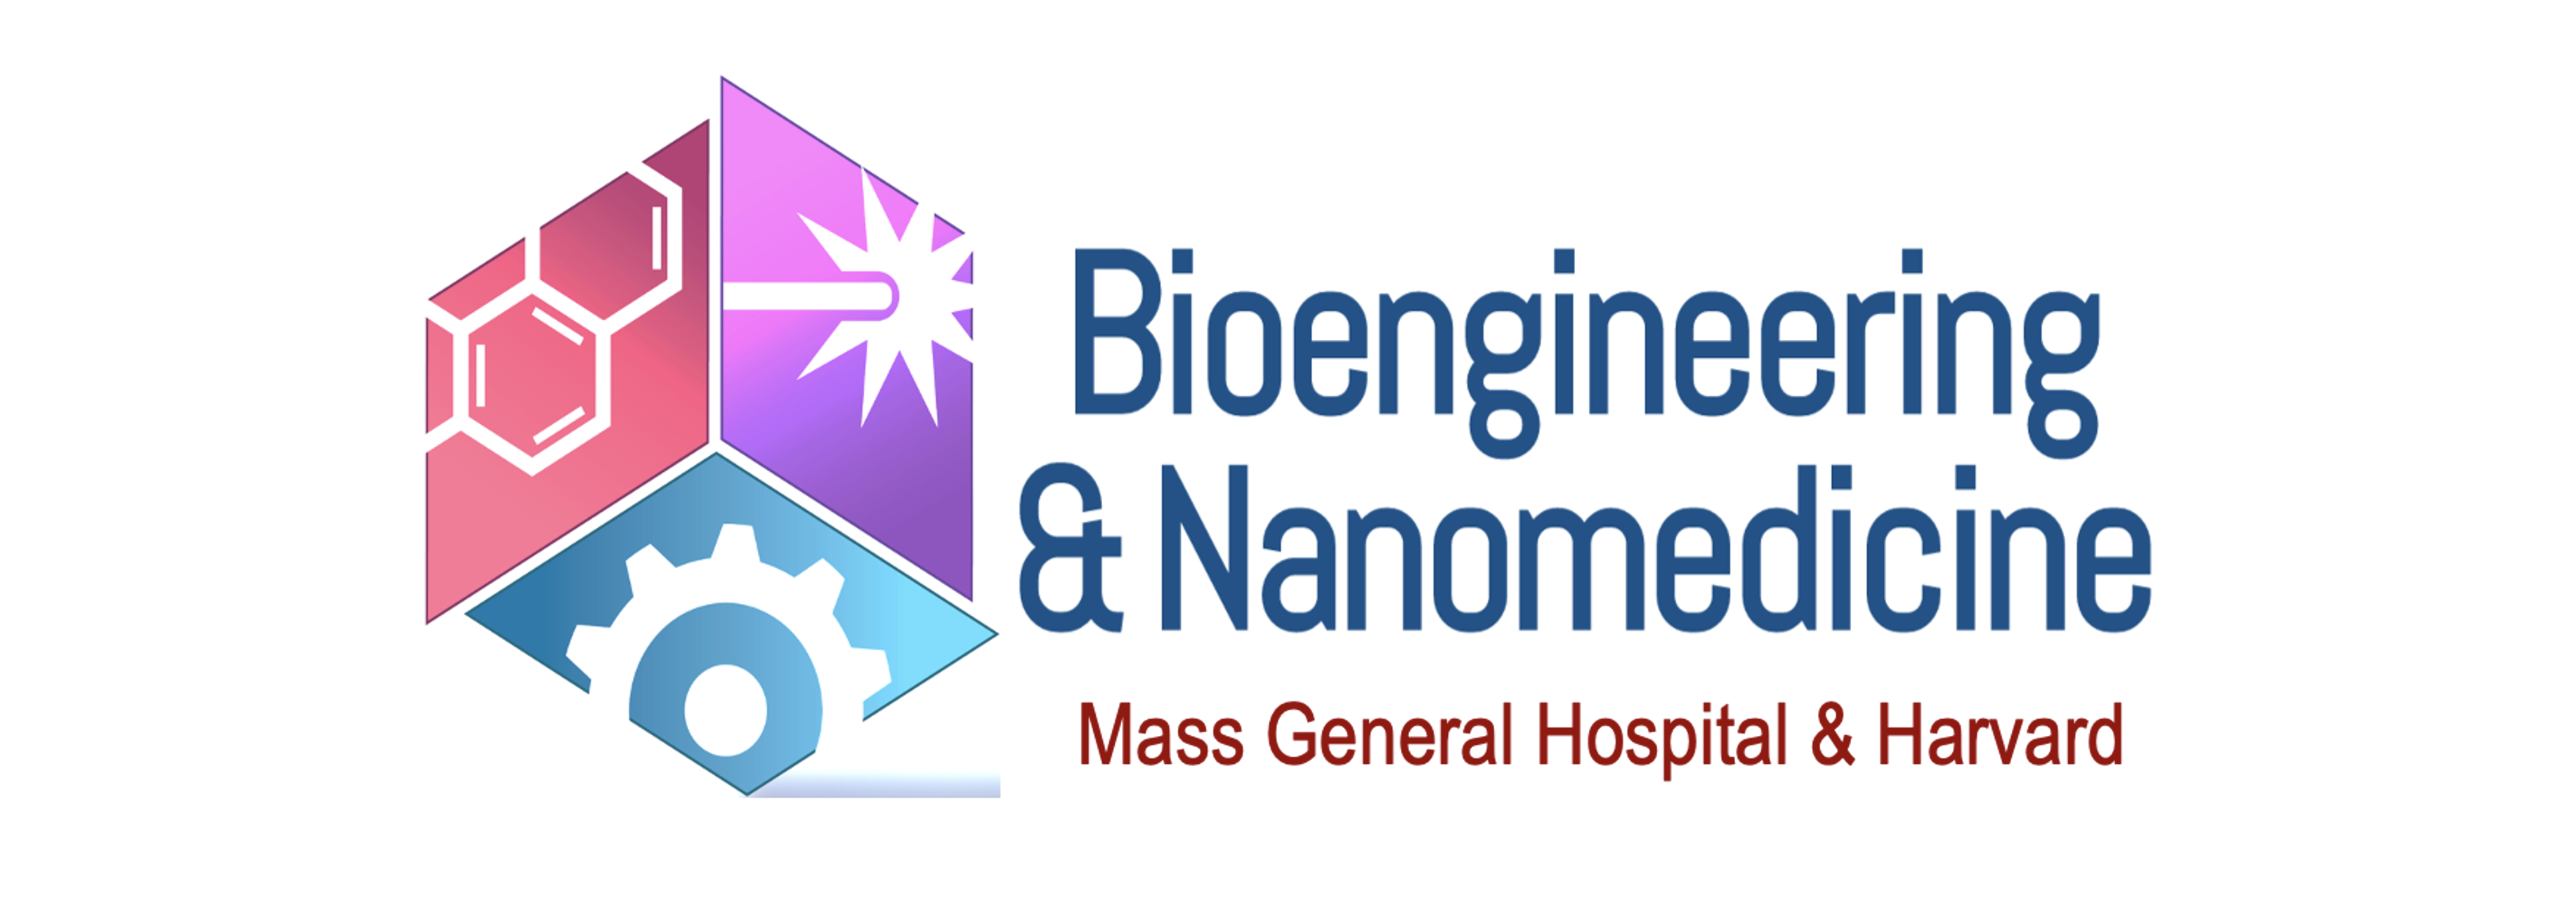 Bioengineering & Nanomedicine Program at MGH